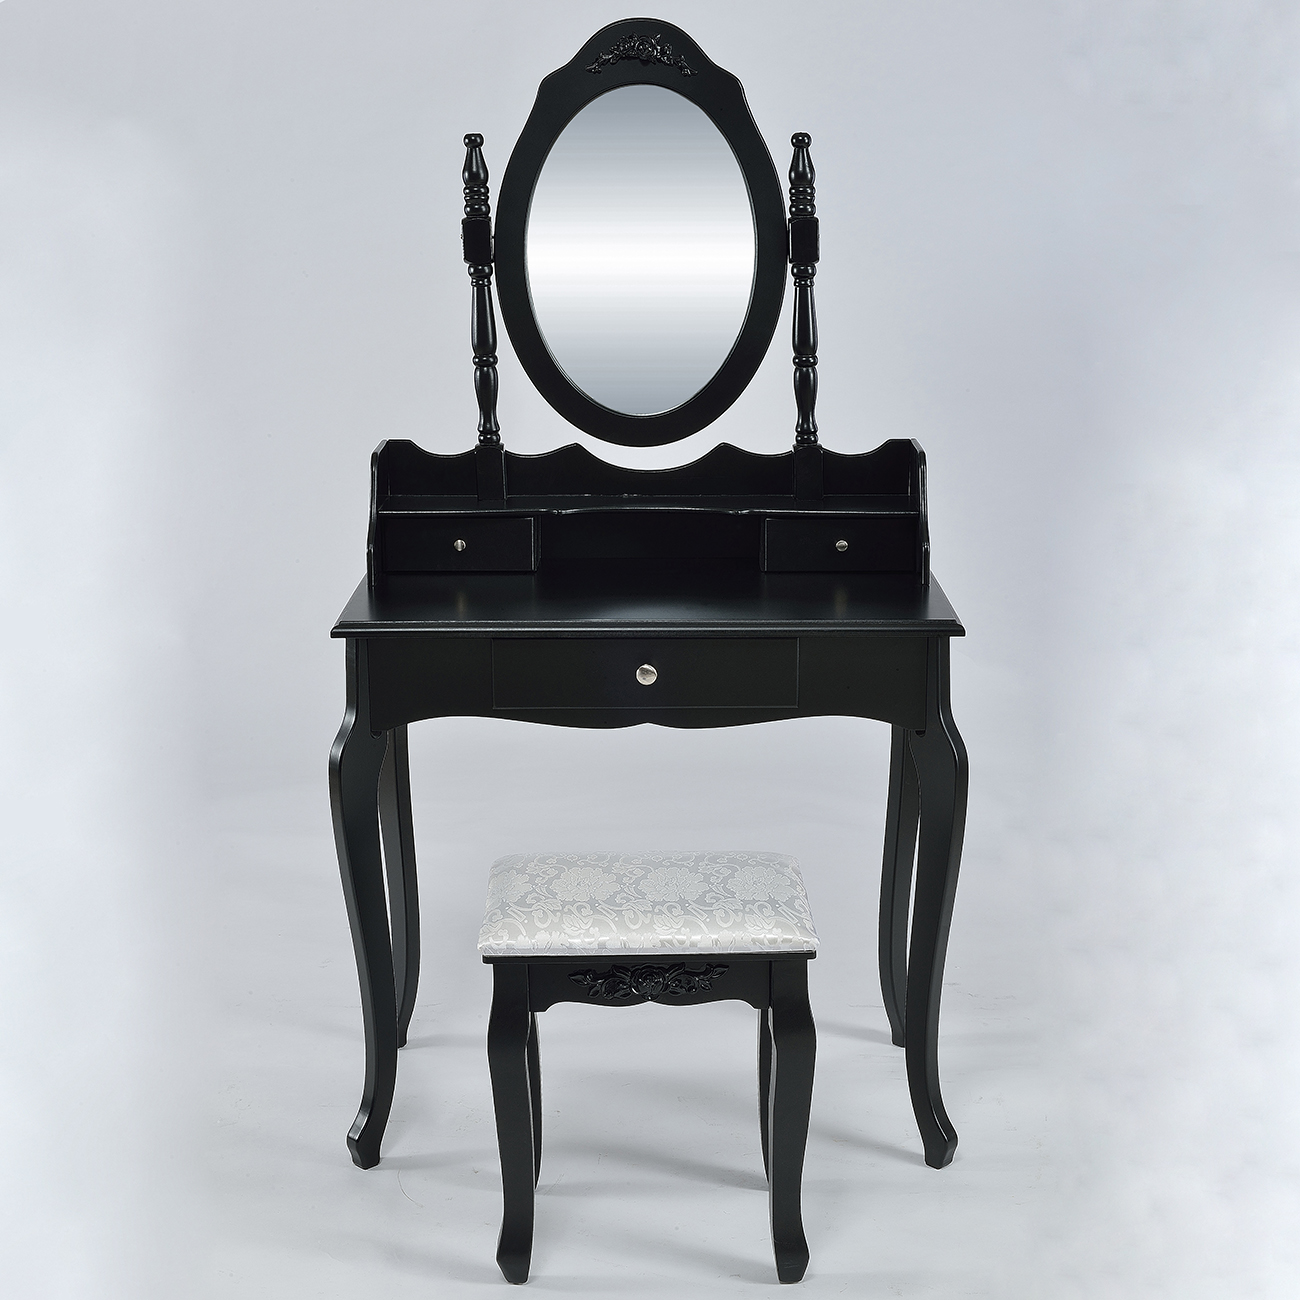 NEW 3 Drawer Mirror Makeup Vanity Table Set With Stool Jewelry Black